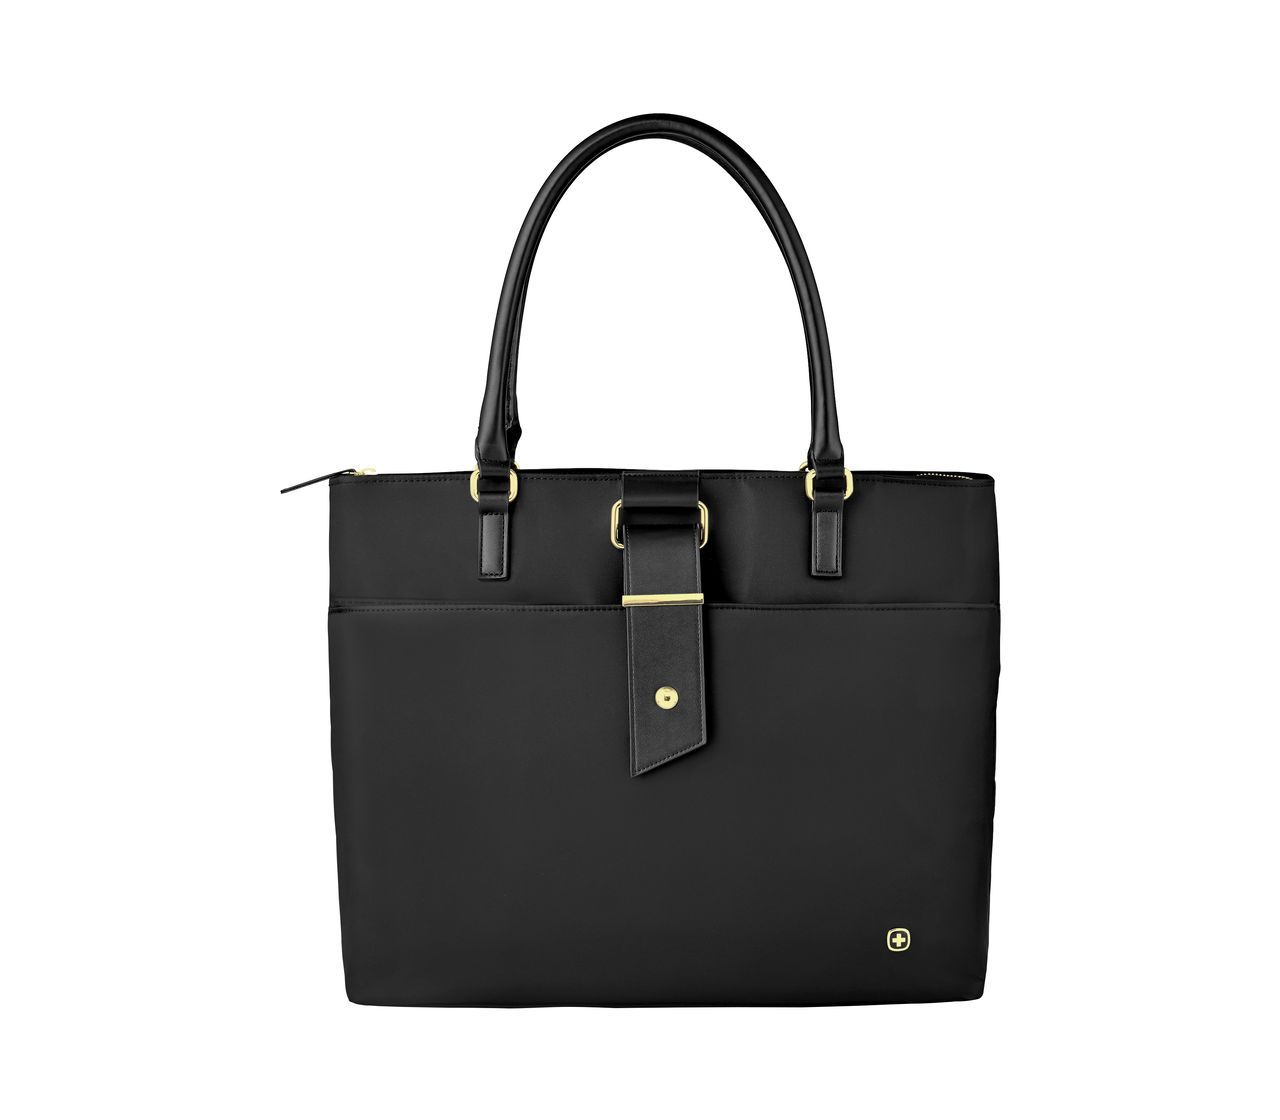 Ana 15.6'' Women's Laptop Tote-600772